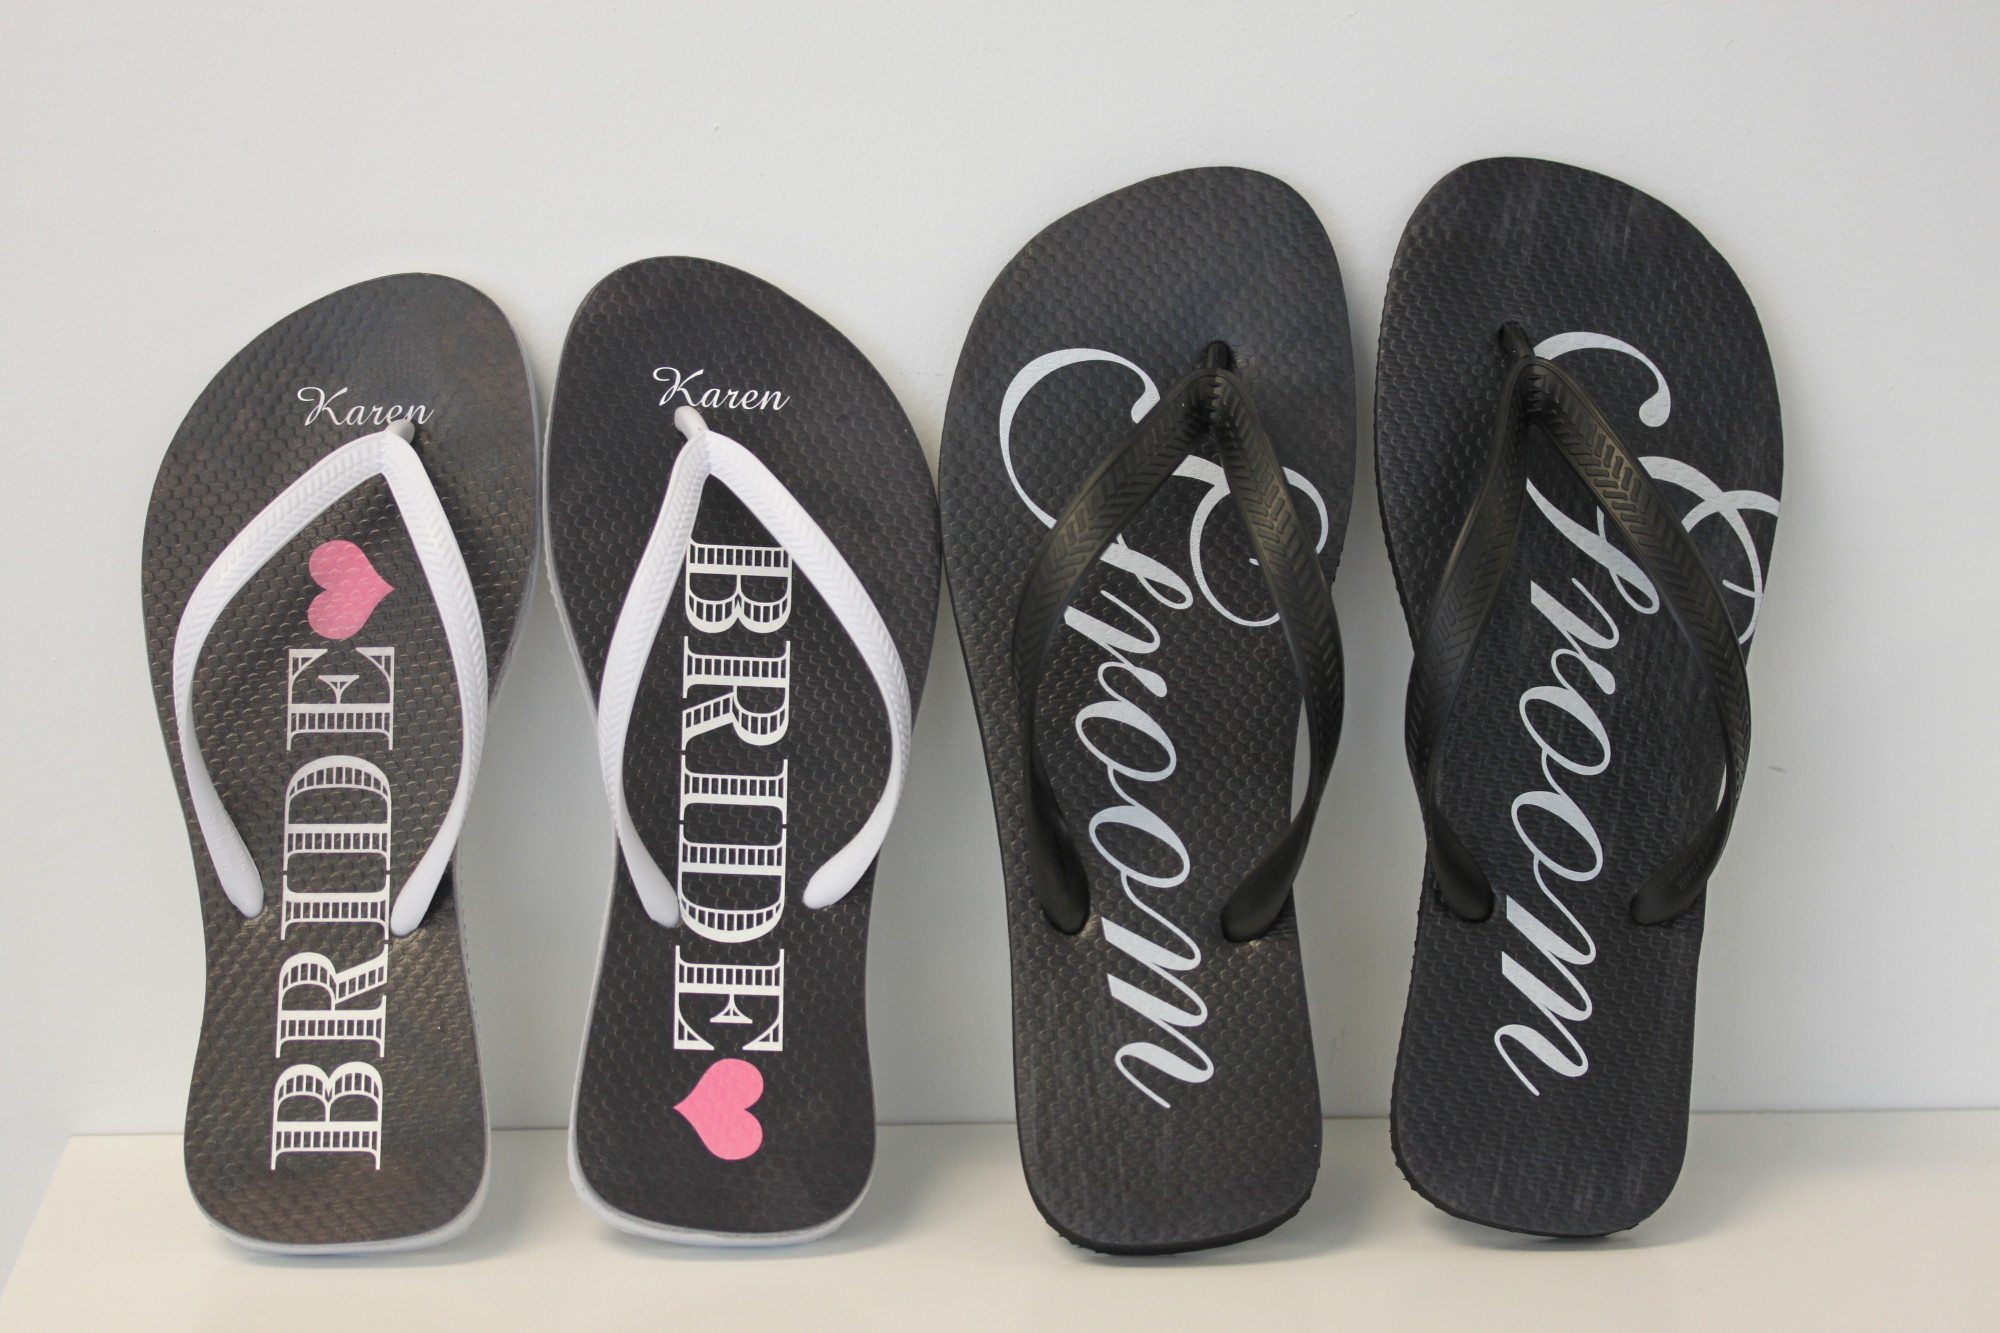 Wedding Party Flip Flops - In A Flash Laser - iPad Laser Engraving ...